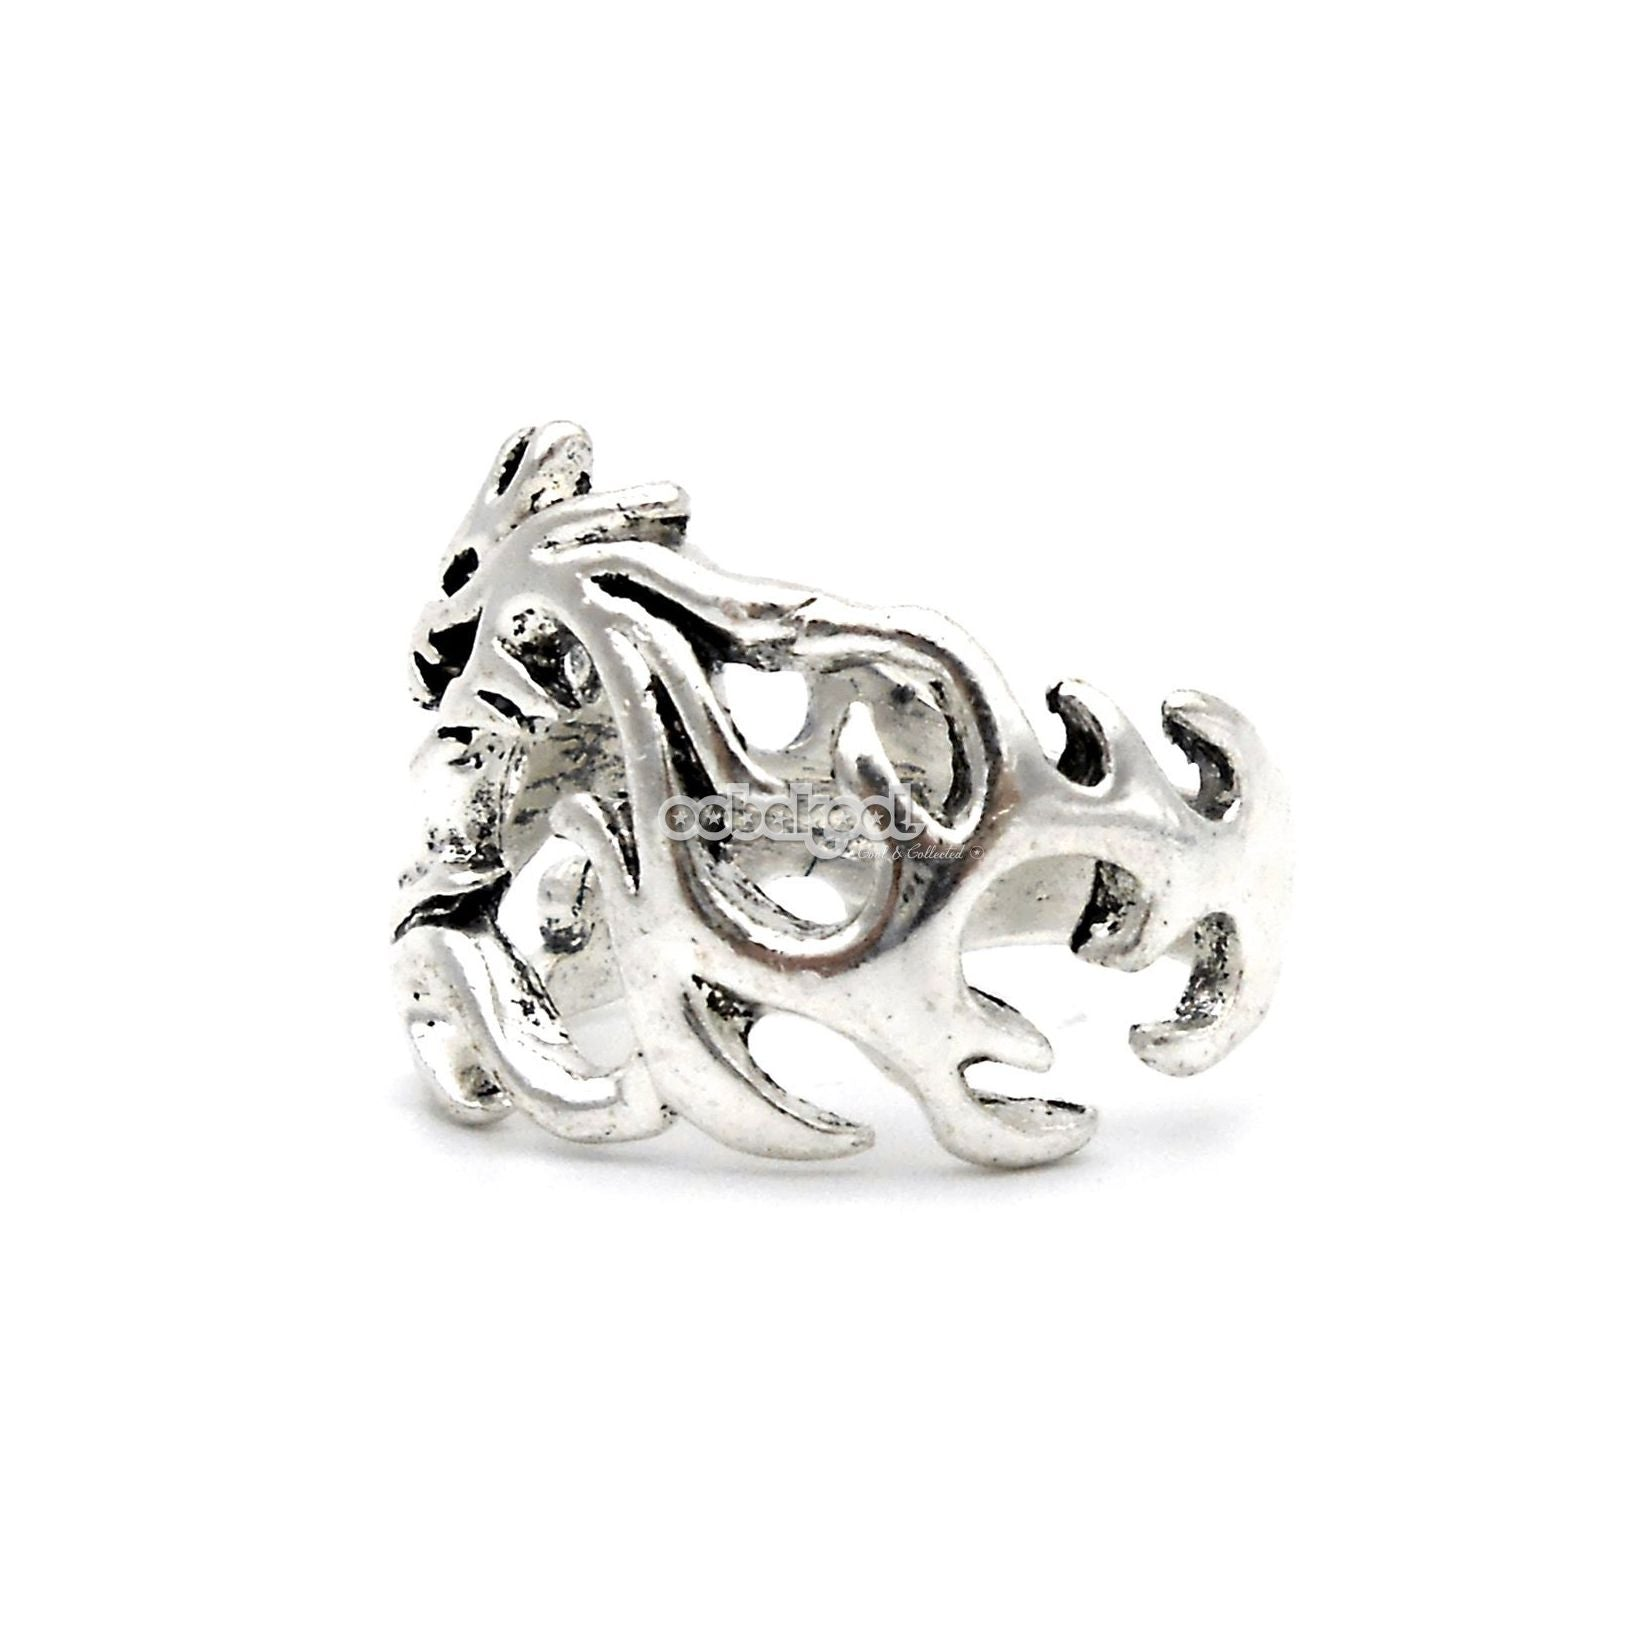 Rings - Mythical Creatures / Dragon Ring / Stainless Steel - Size 9